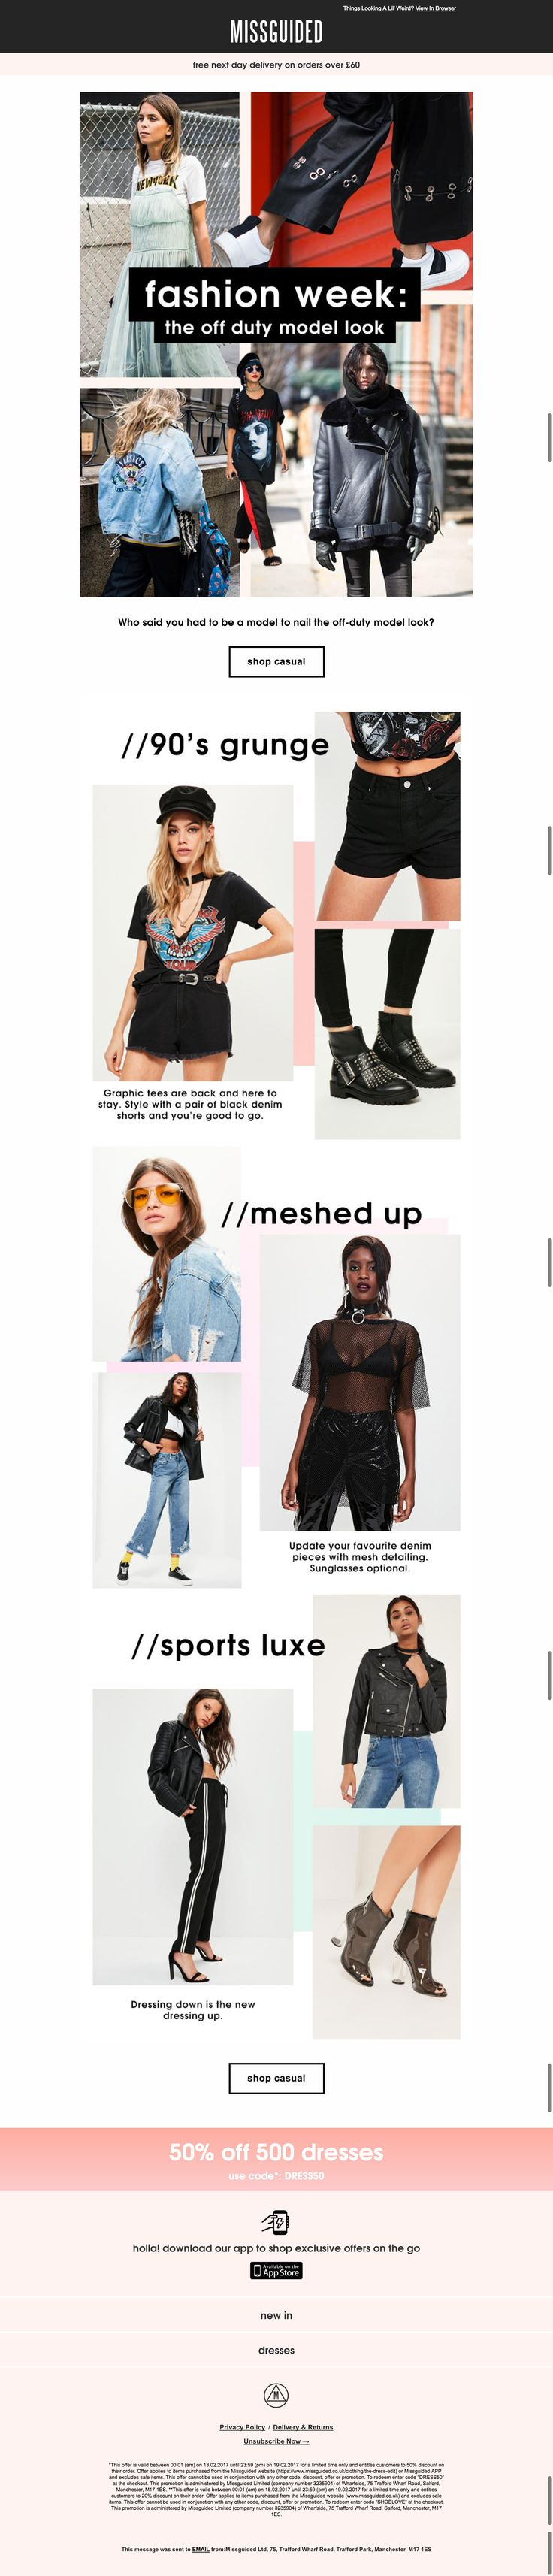 miss guided fashion week email